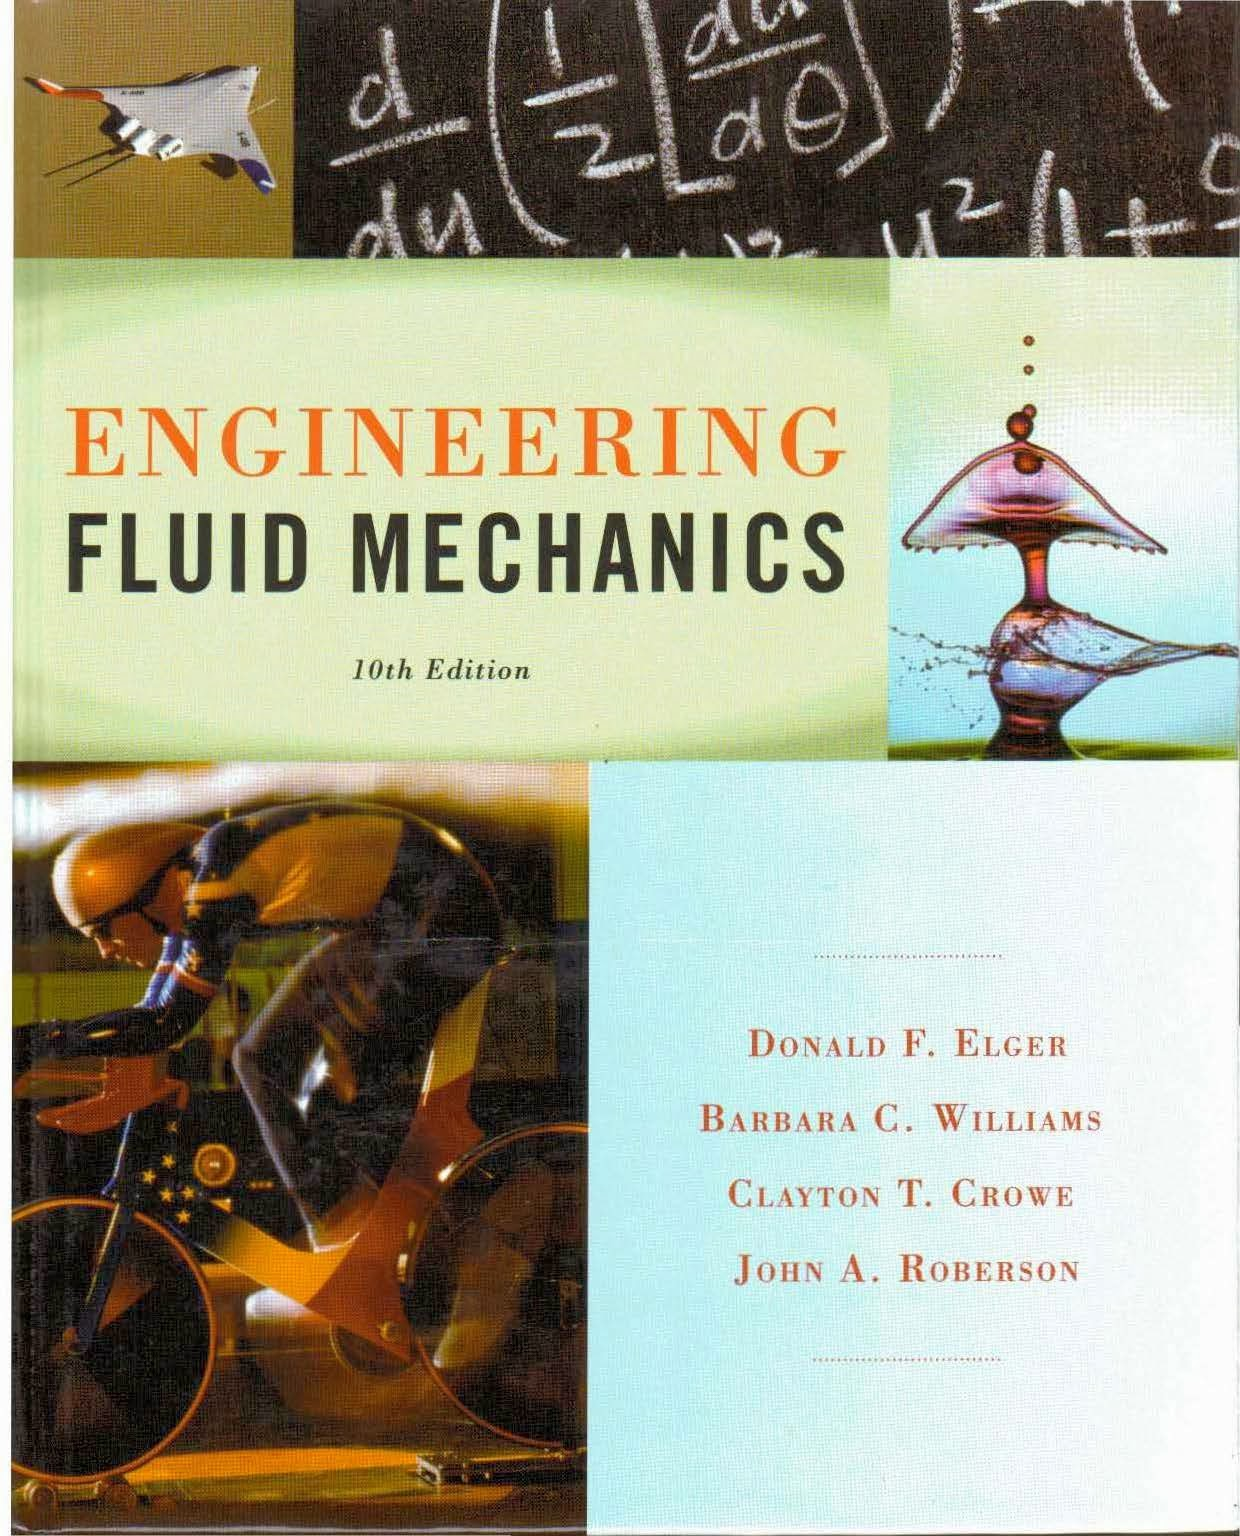 Book: Engineering Fluid Mechanics by Donald F. Elger, Clayton T. Crowe, Barbara C. Williams, John A. Roberson